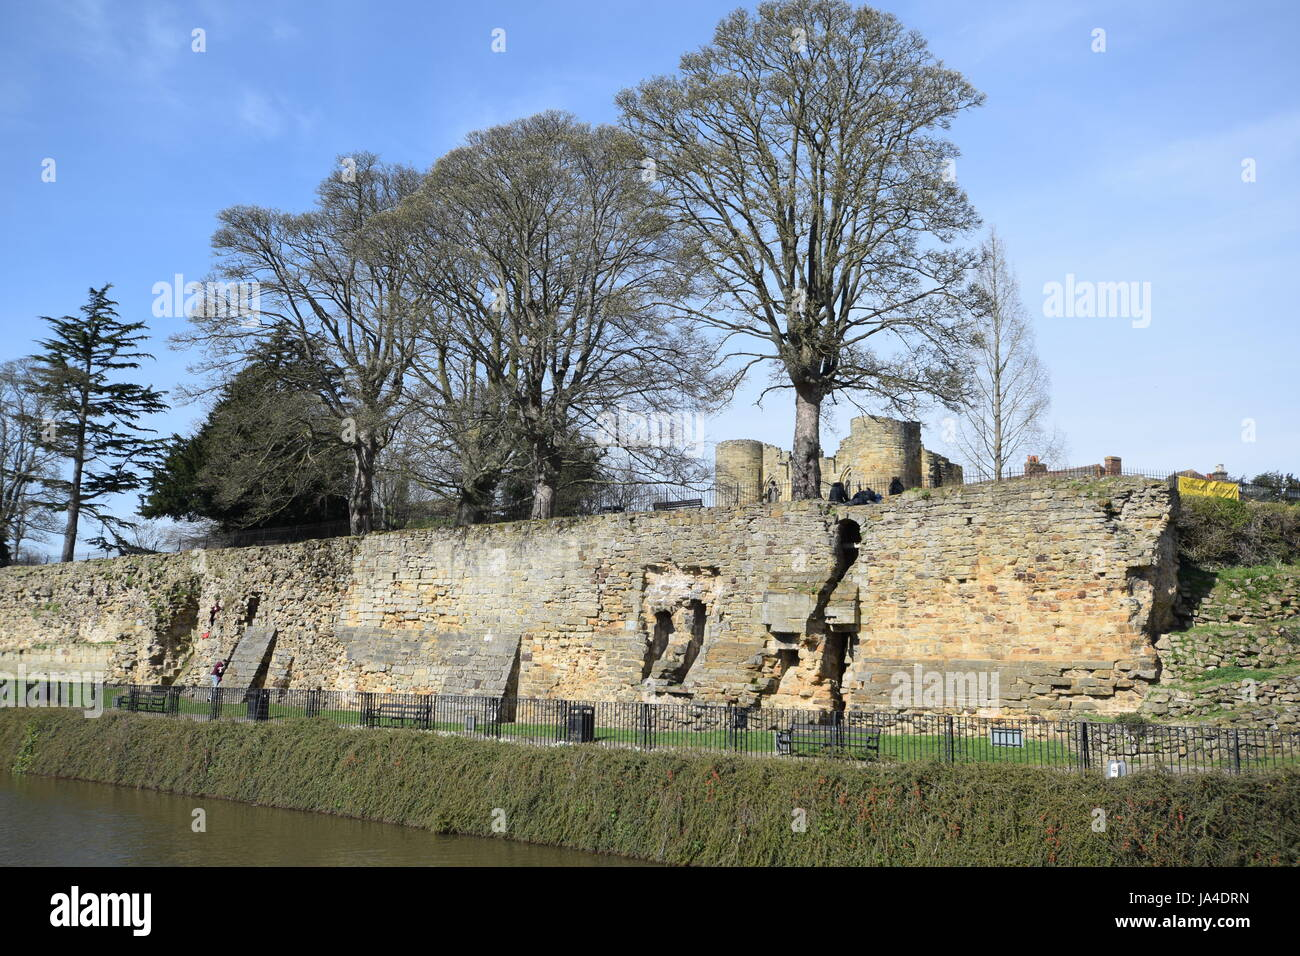 Tonbridge Castle 2017 - Stock Image